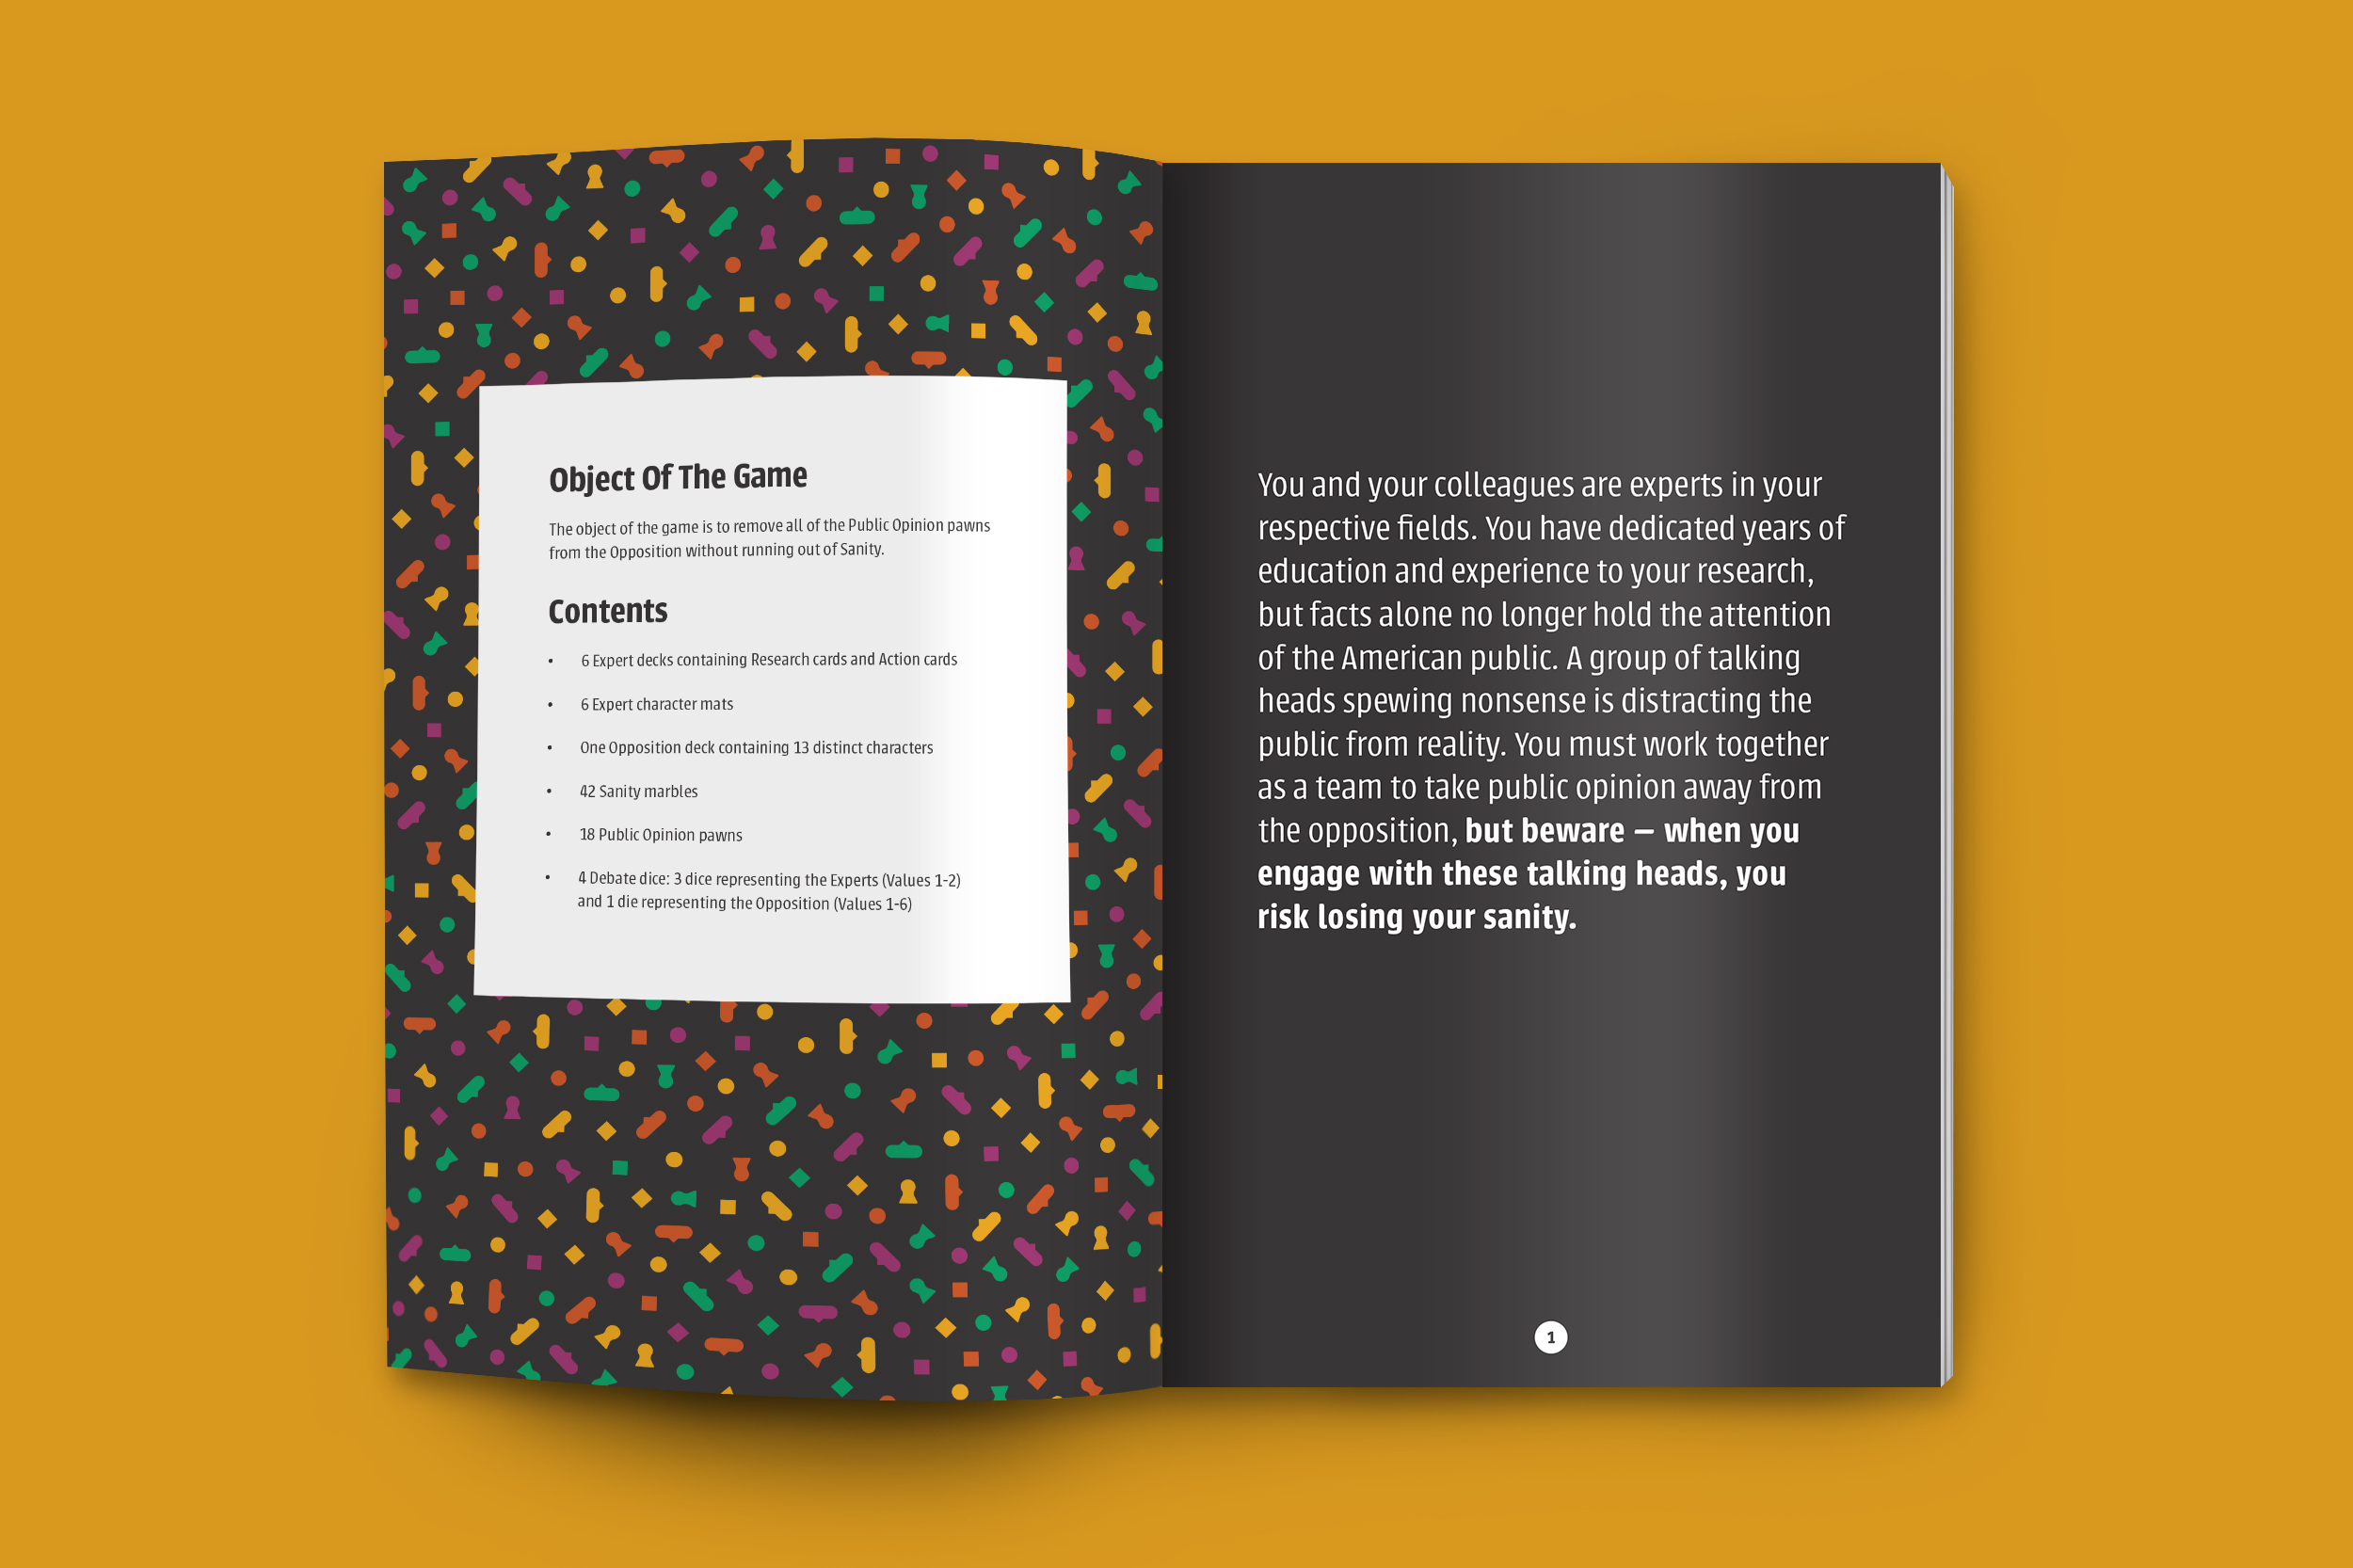 A booklet mockup featuring an explanation of the object of the game